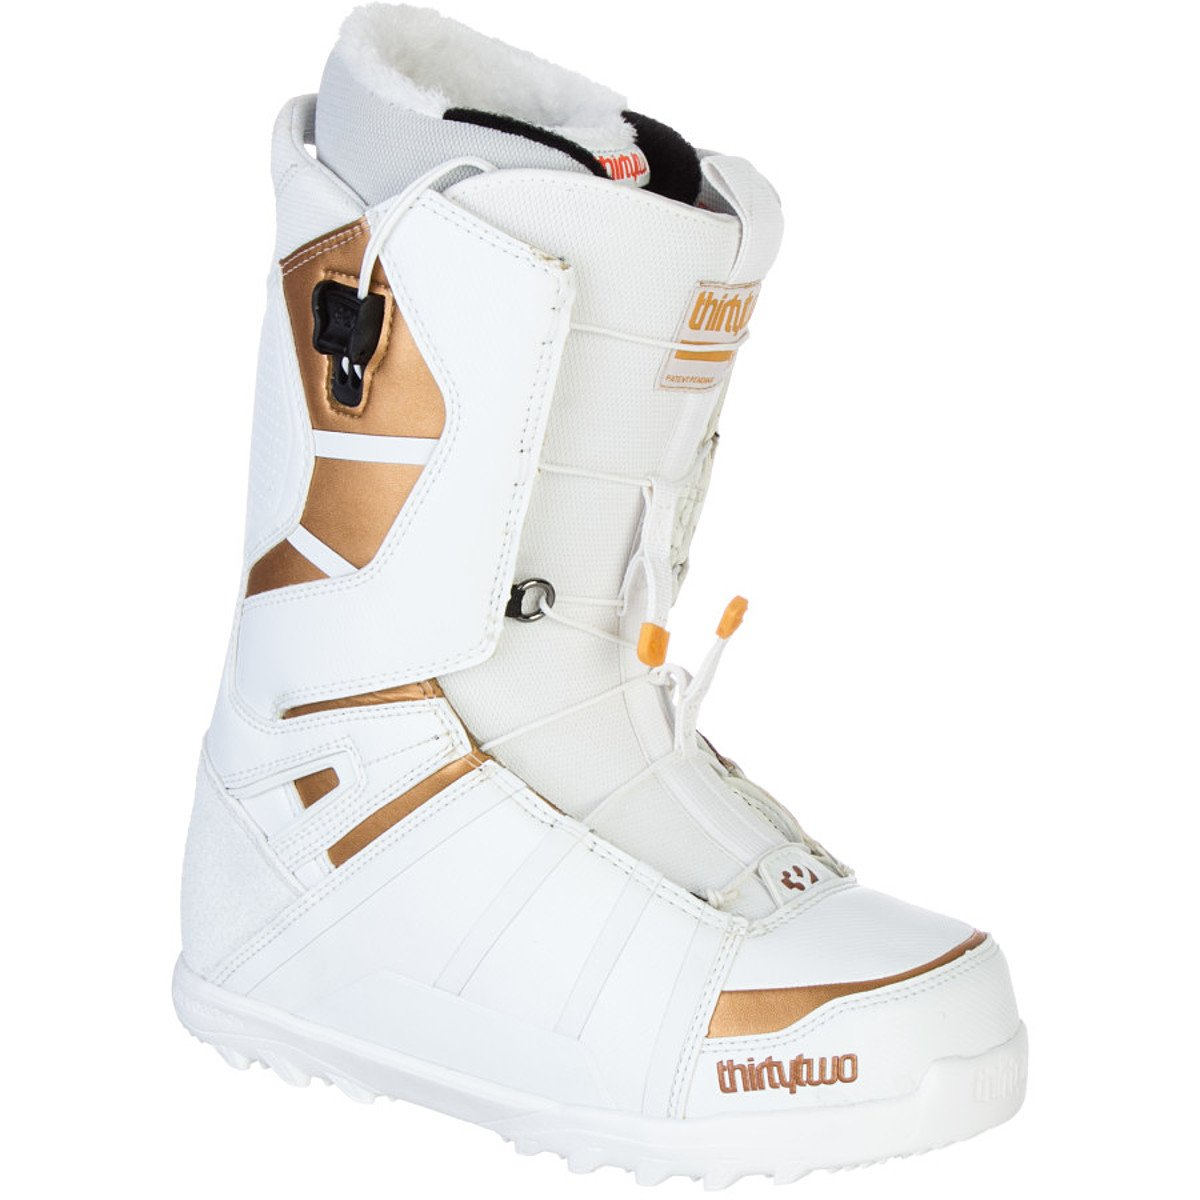 thirtytwo womens Lashed FT 13 Inch Snowboard Boot Thirty Two LASHED FT 13 Inch-W